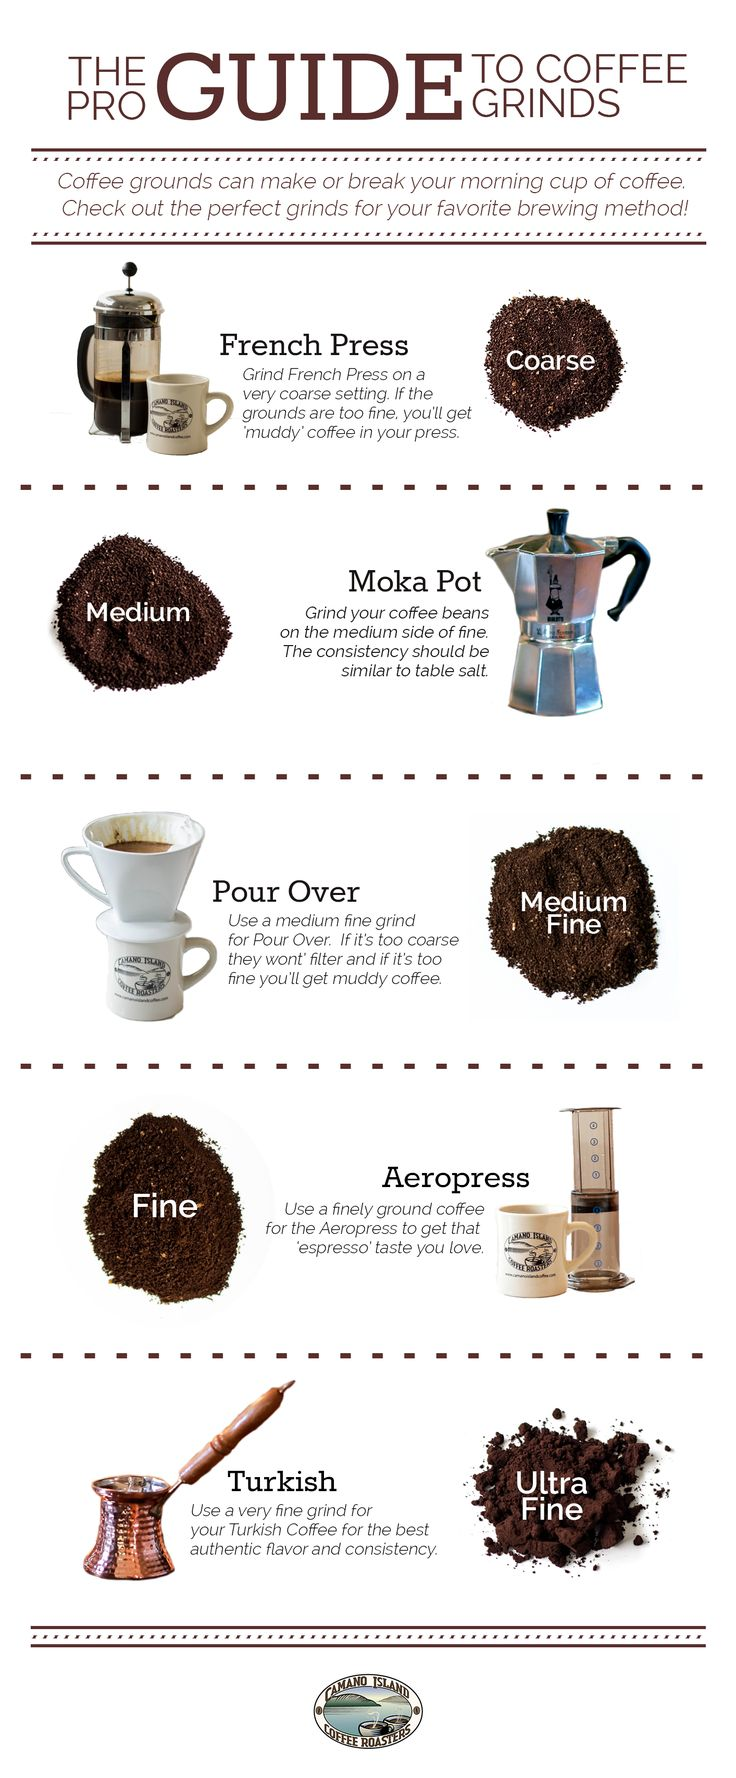 The Pro Guide to Coffee Grounds - knowyourgrinder.com #coffee #grinders #coffeeground